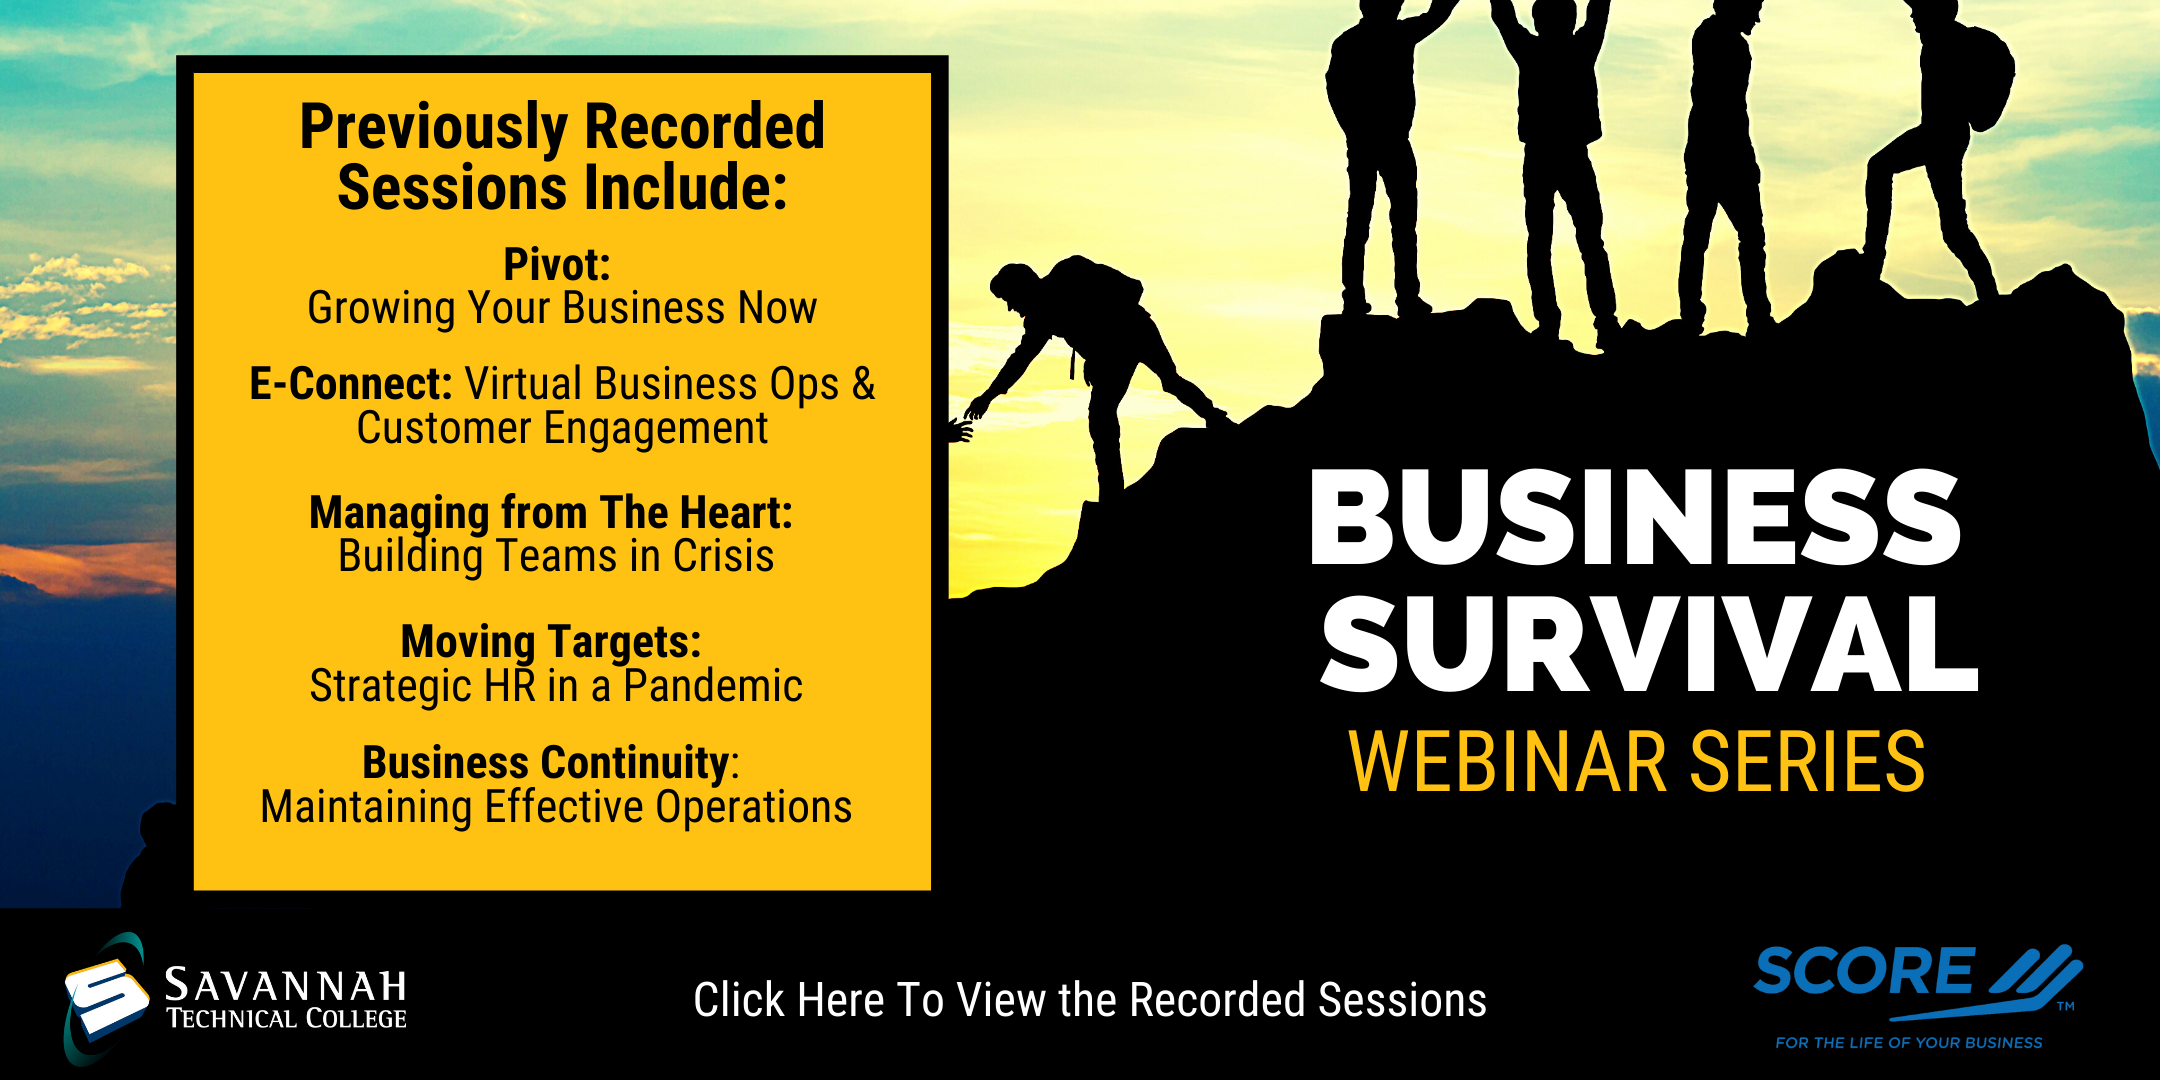 Click here to watch the previously recorded sessions